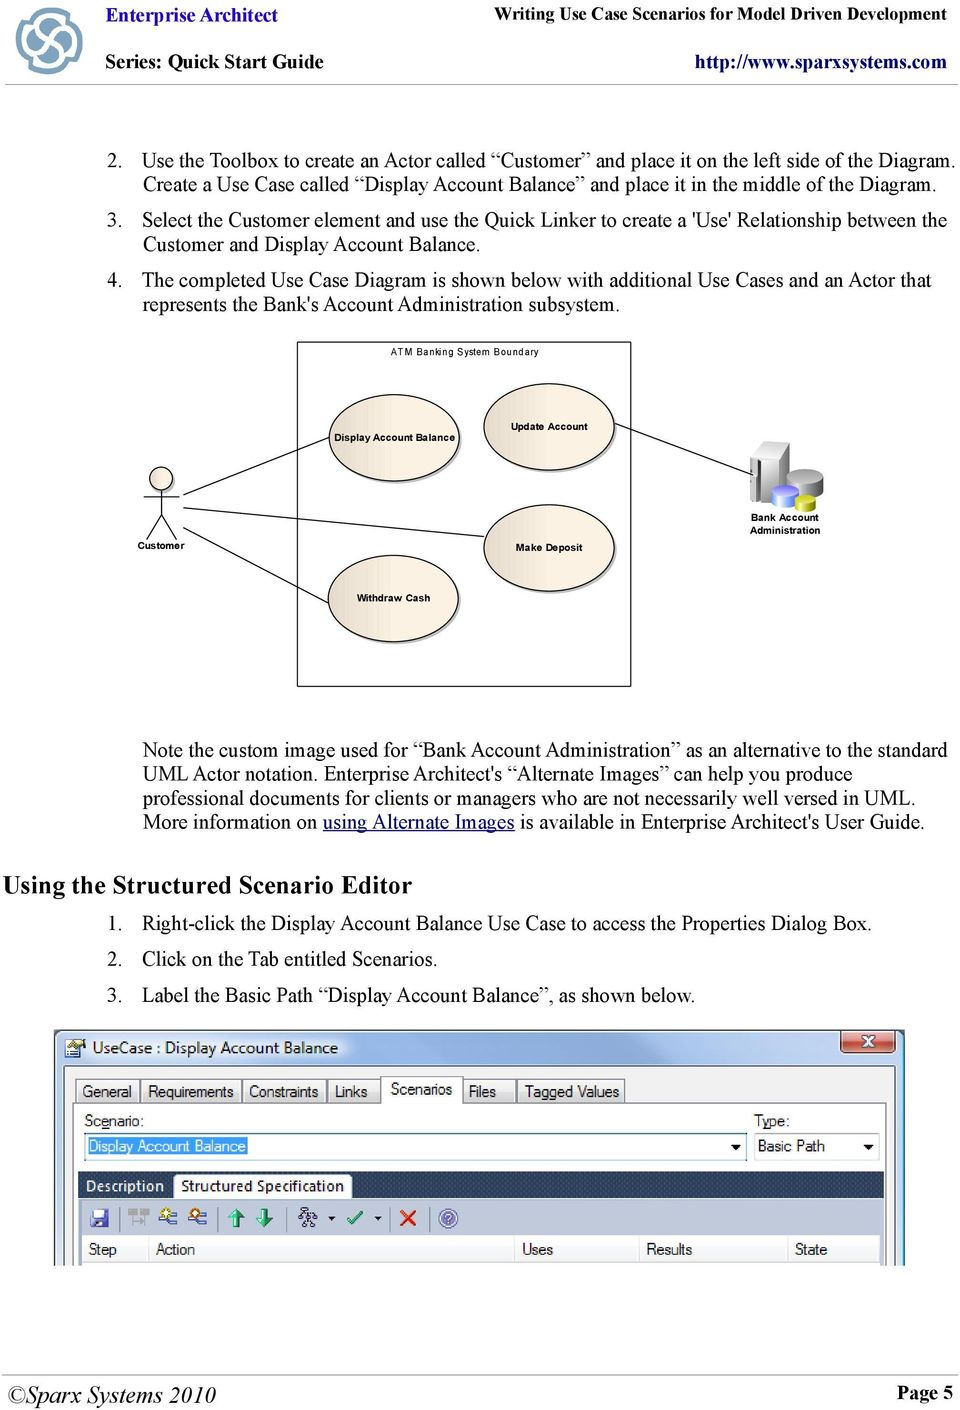 The completed Use Case Diagram is shown below with additional Use Cases and an Actor that represents the Bank's Account Administration subsystem.